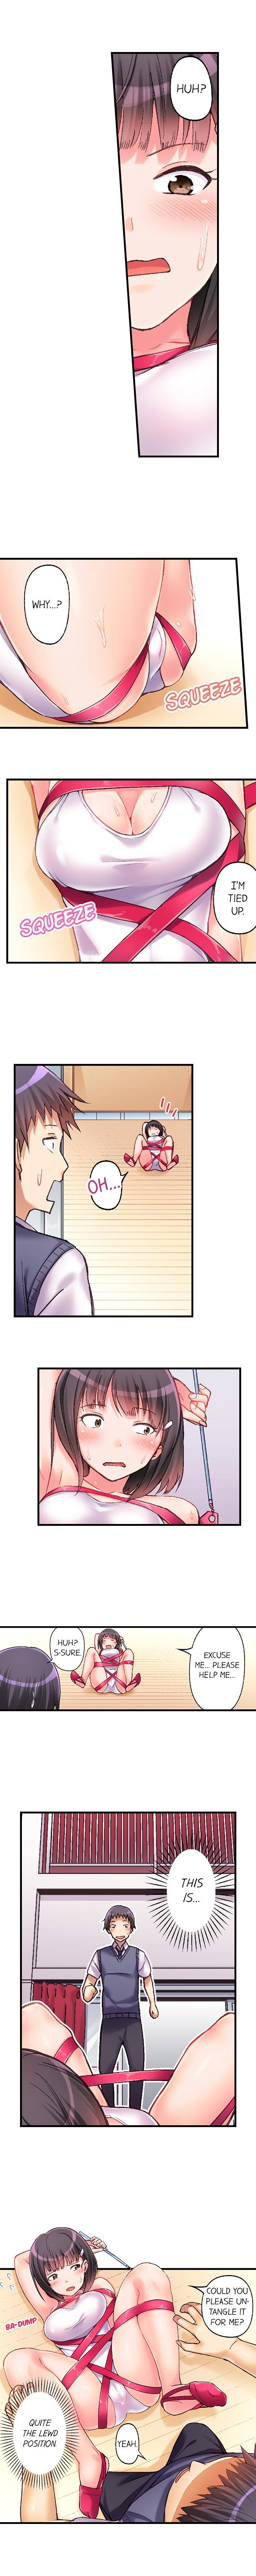 No Panty Booty Workout! Ch. 1 - 6 33